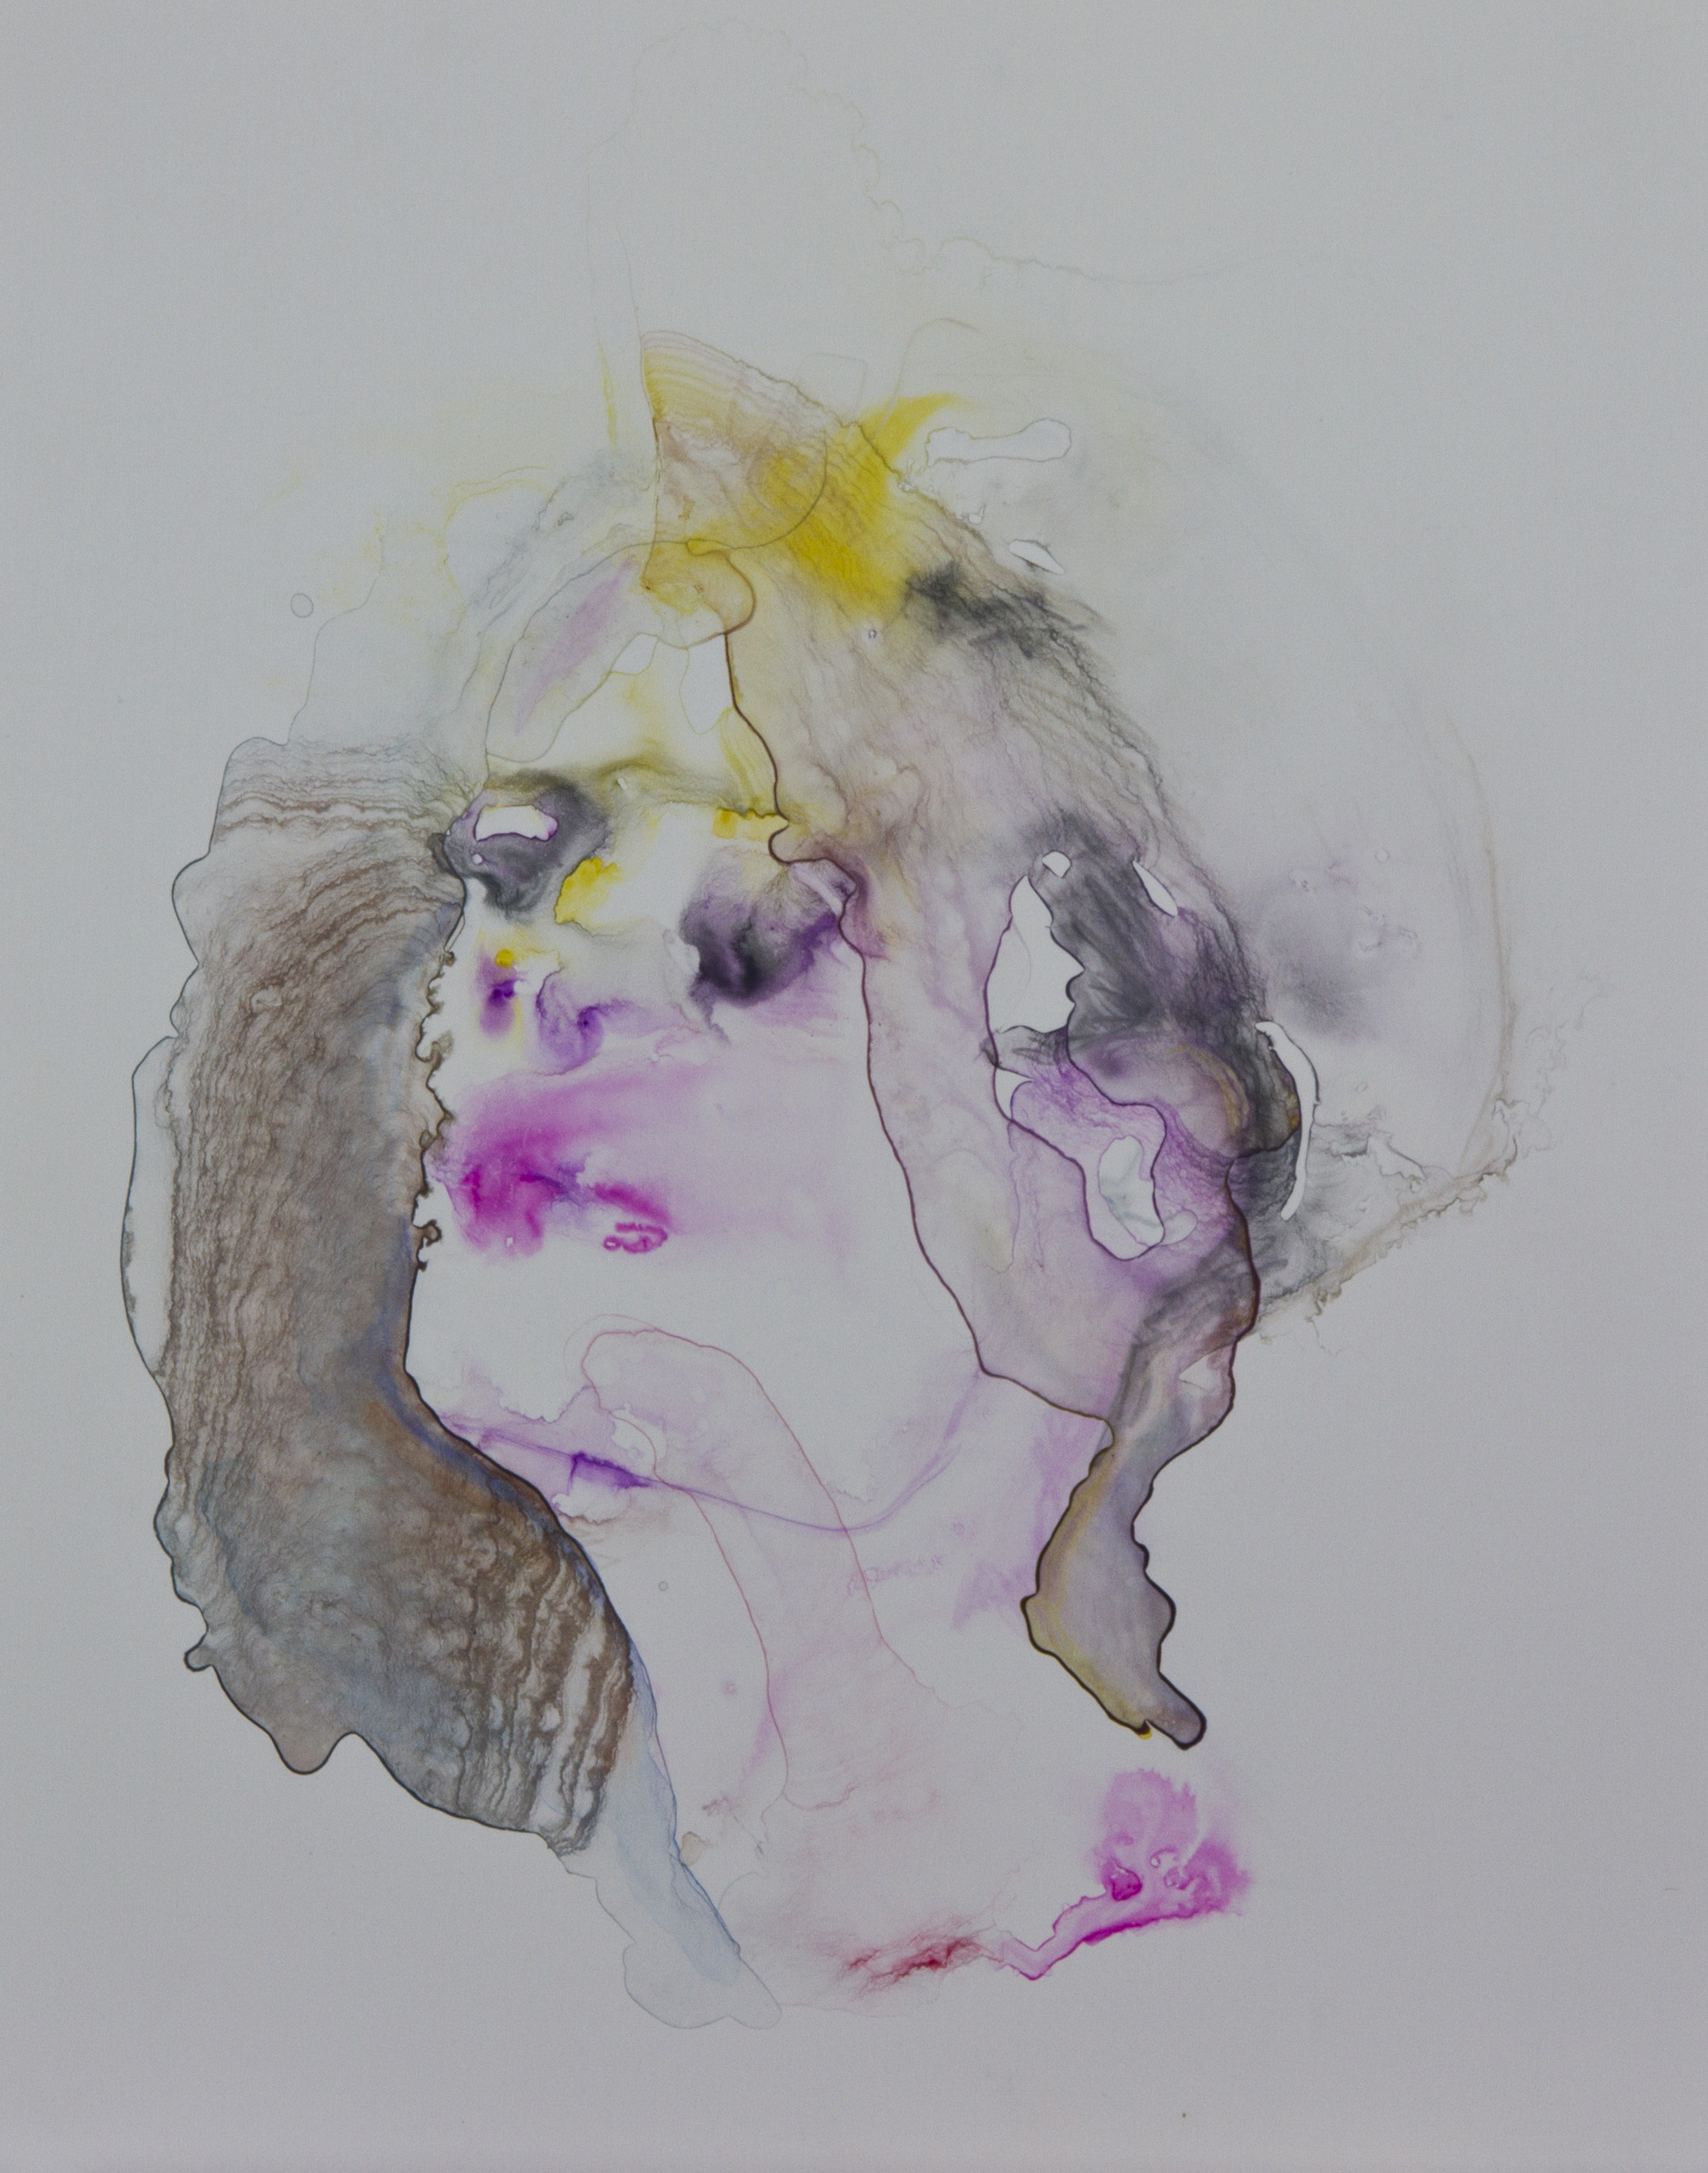 Specimen 10, 2011, watercolor on polypropylene, 11x14 inches